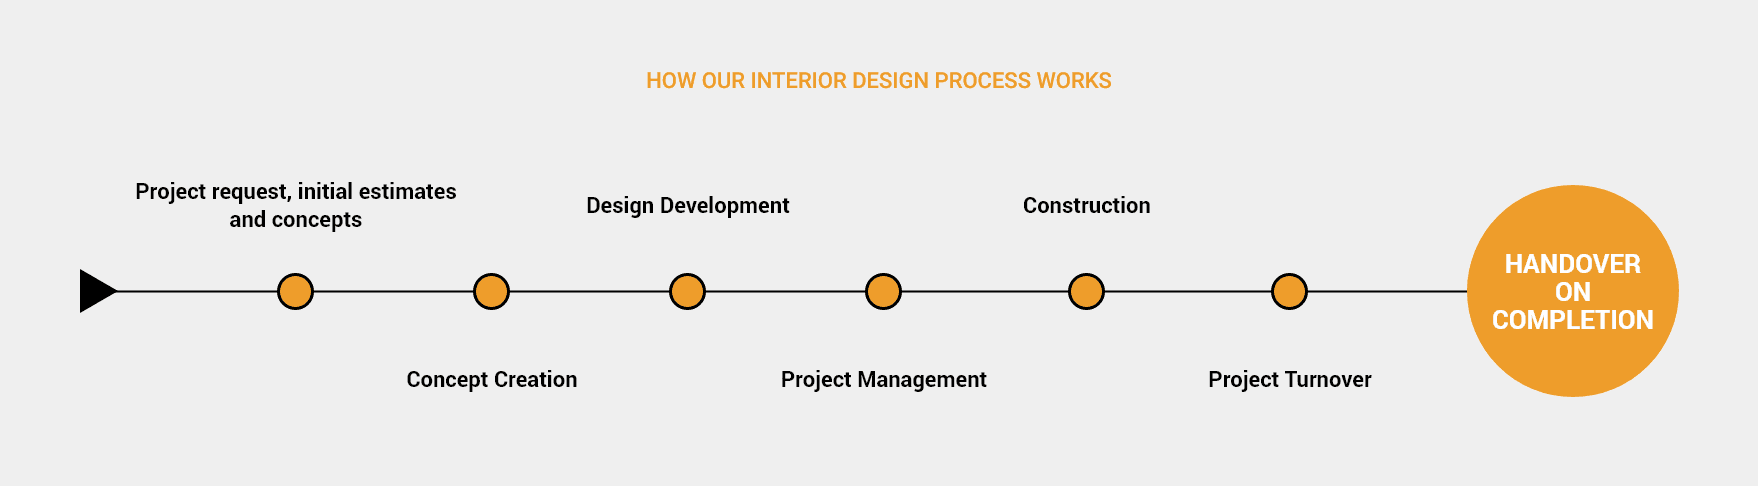 Our Interior Design process